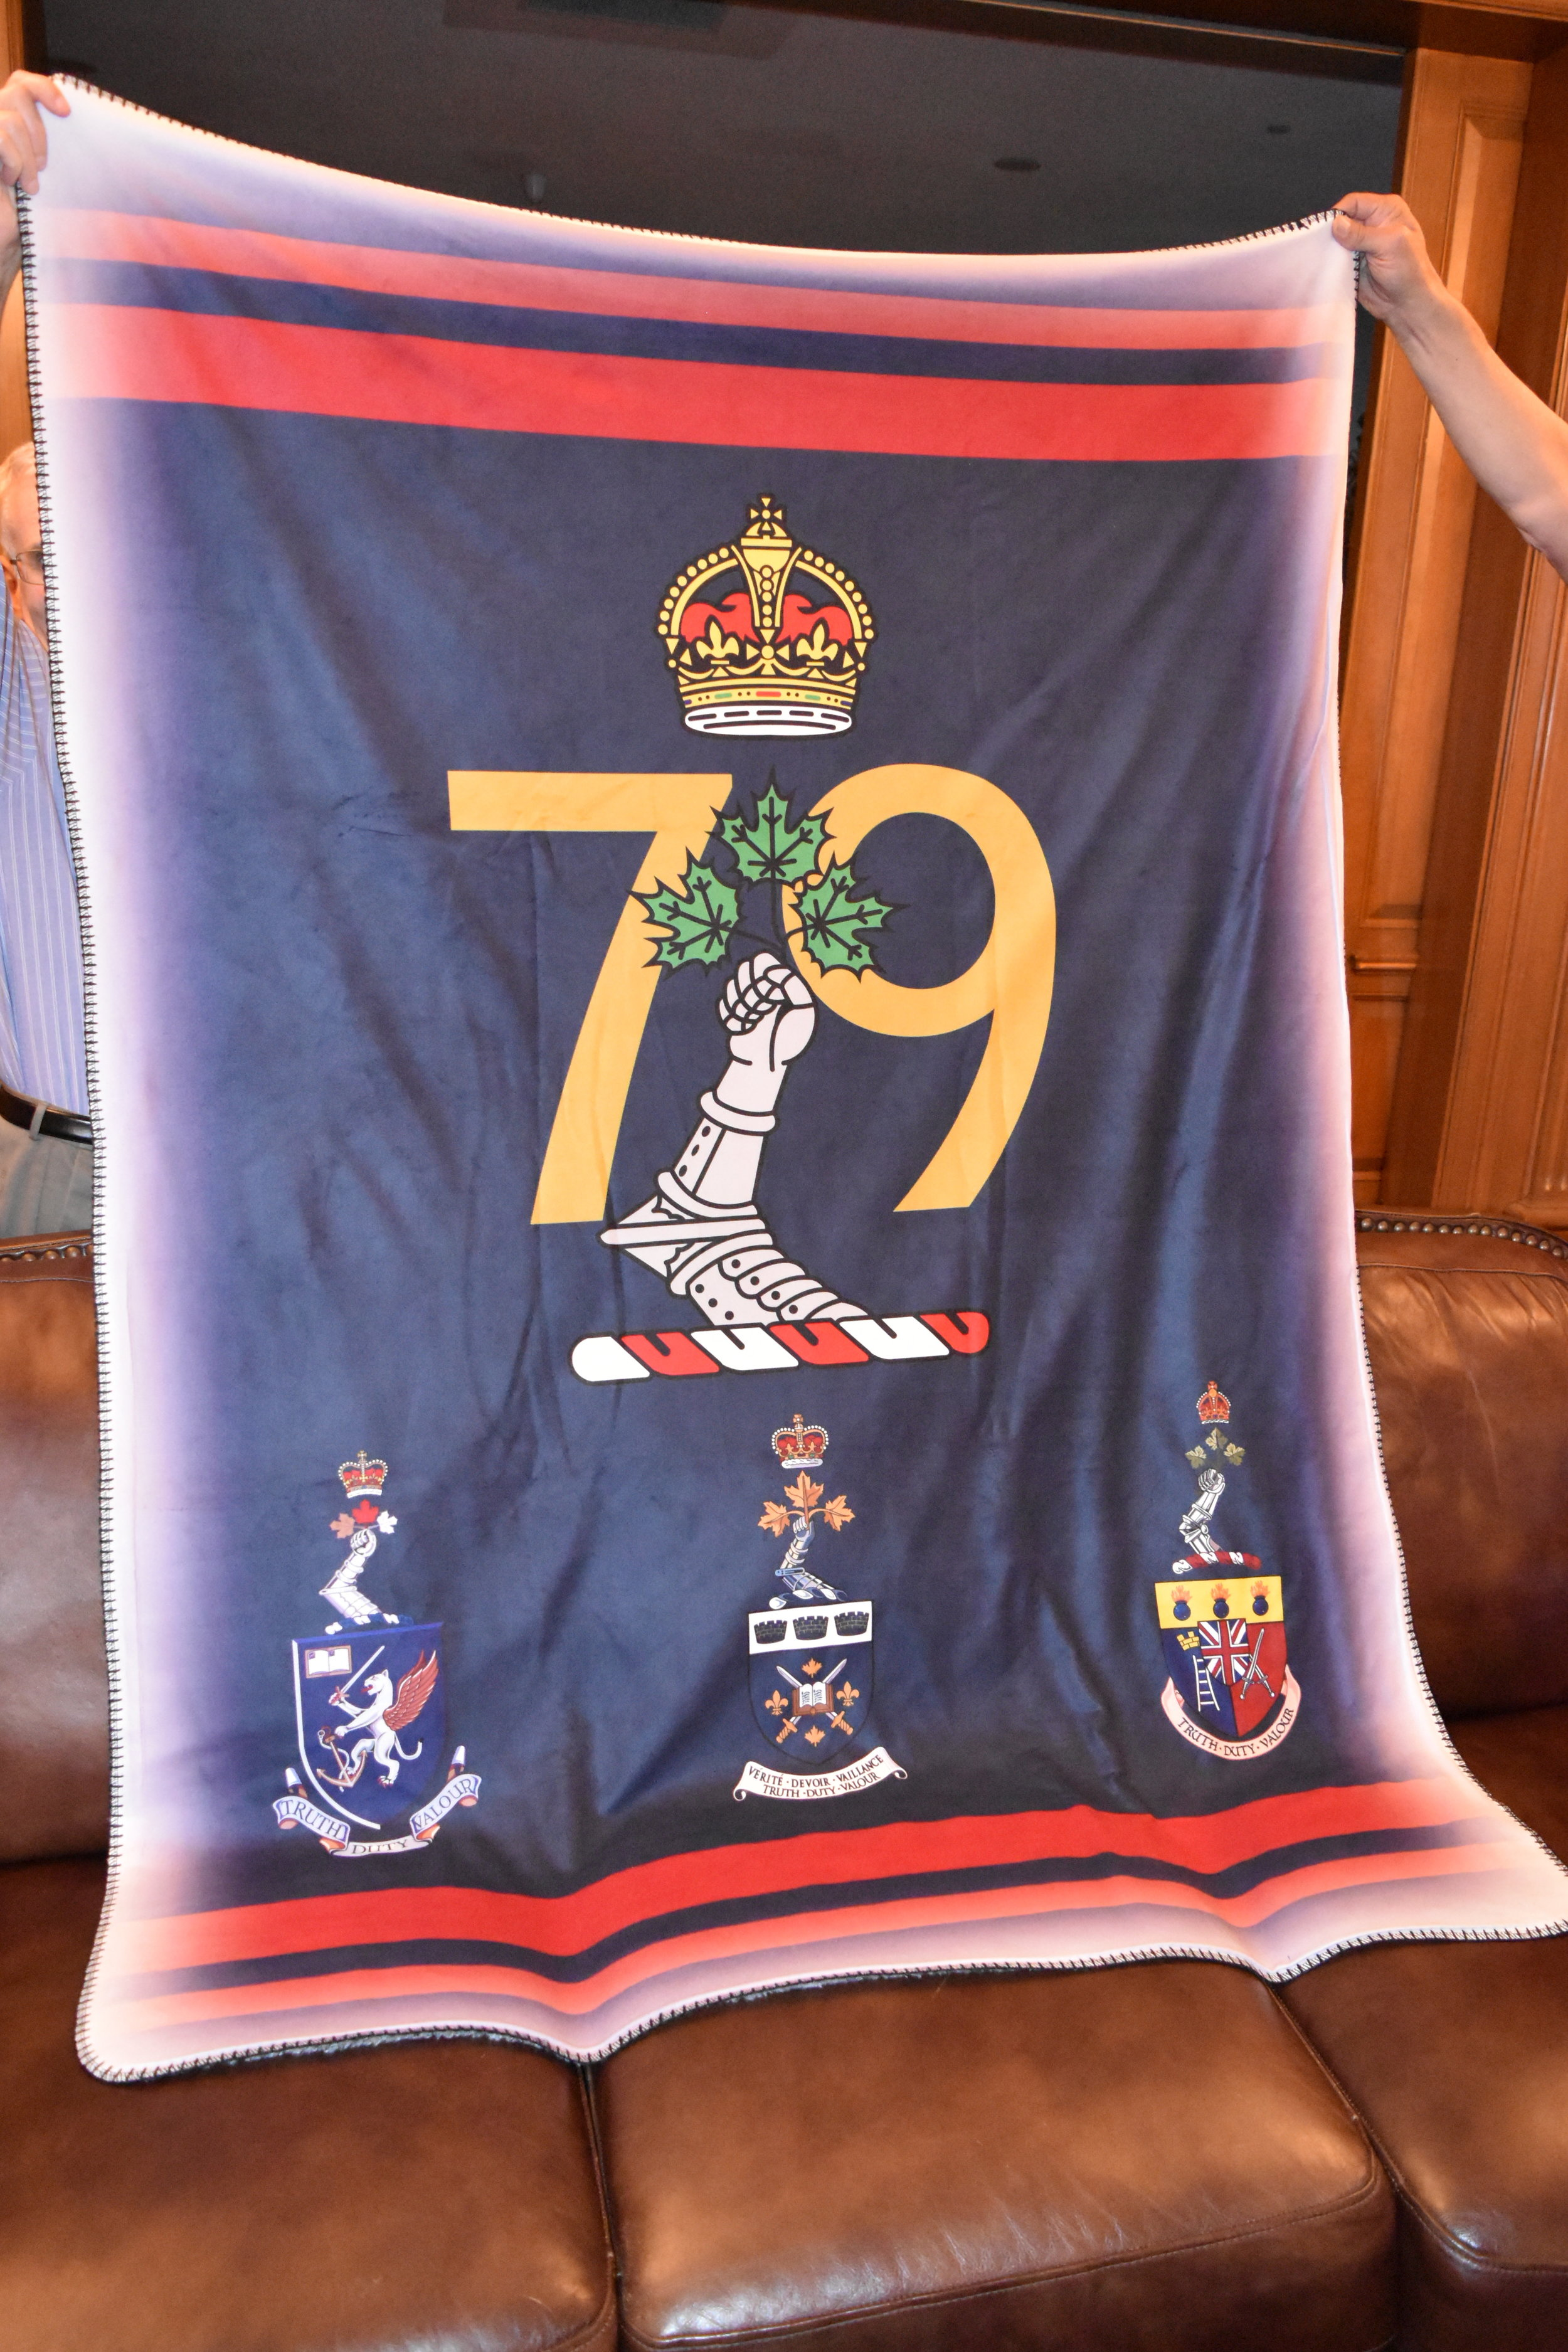 blanket courtesy of scotty mills - turned out really well especially the crests